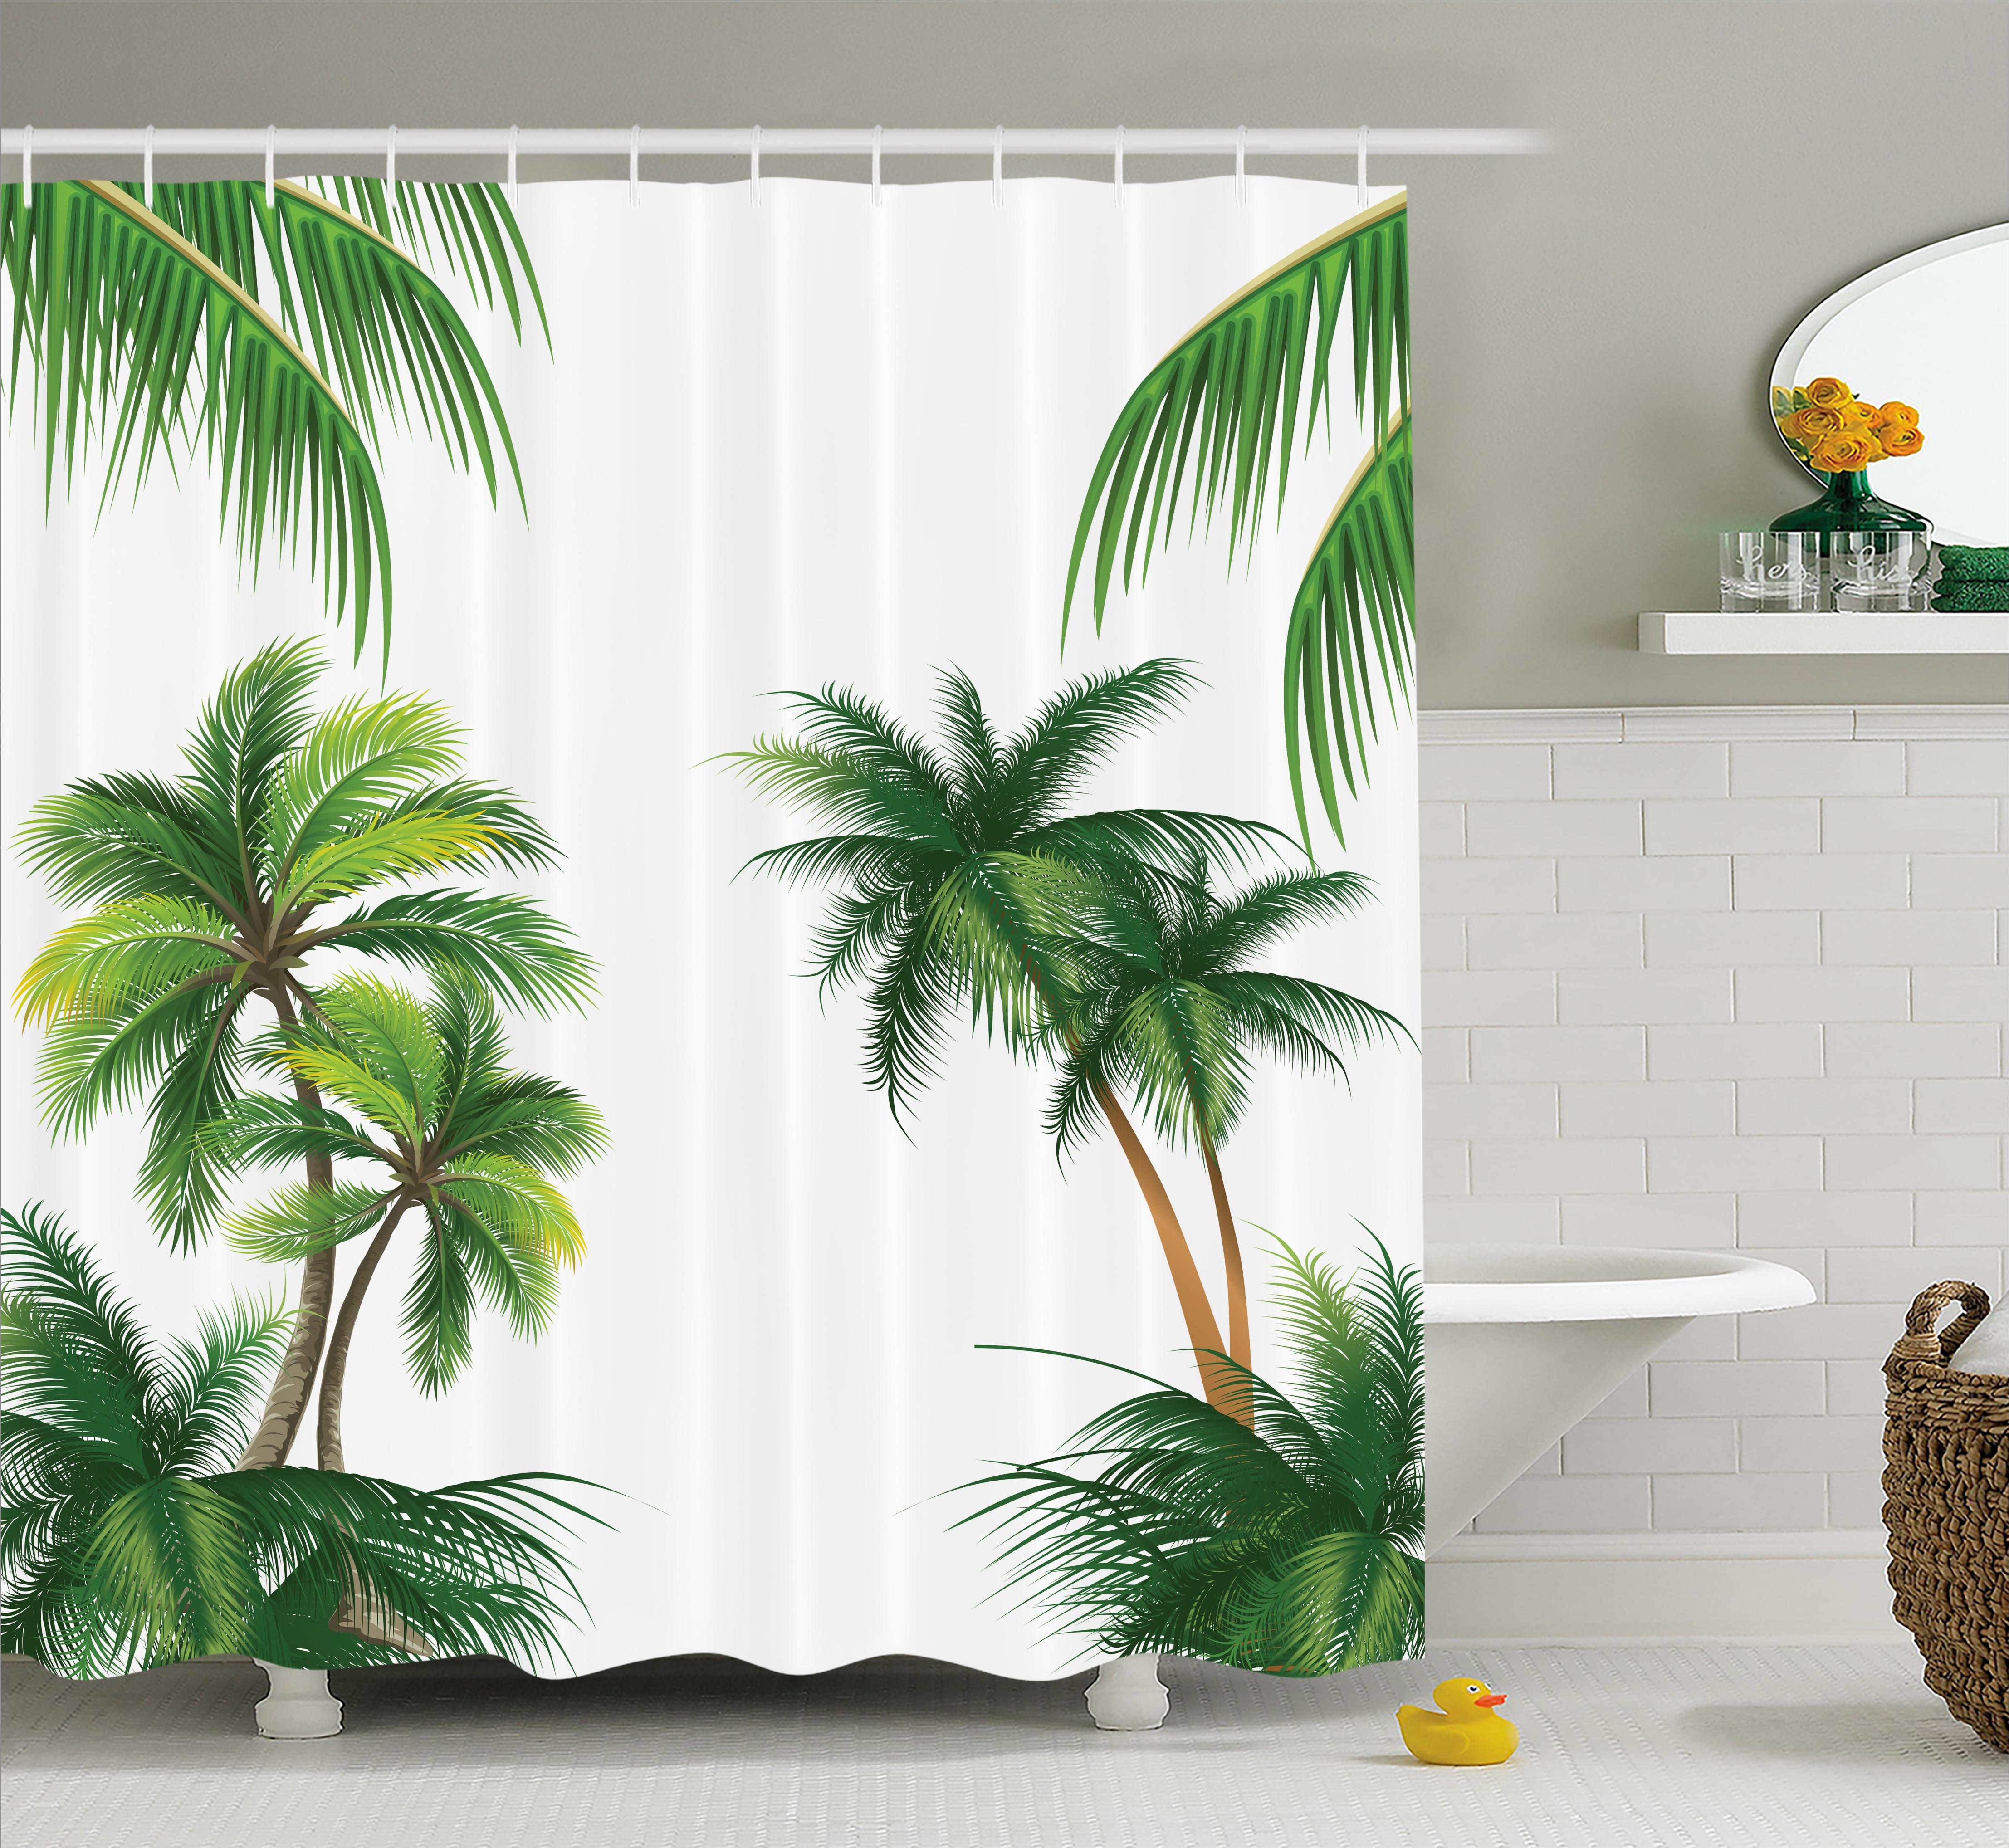 Tropical Shower Curtain, Coconut Palm Tree Nature Paradise Plants Foliage  Leaves Digital Illustration, Fabric